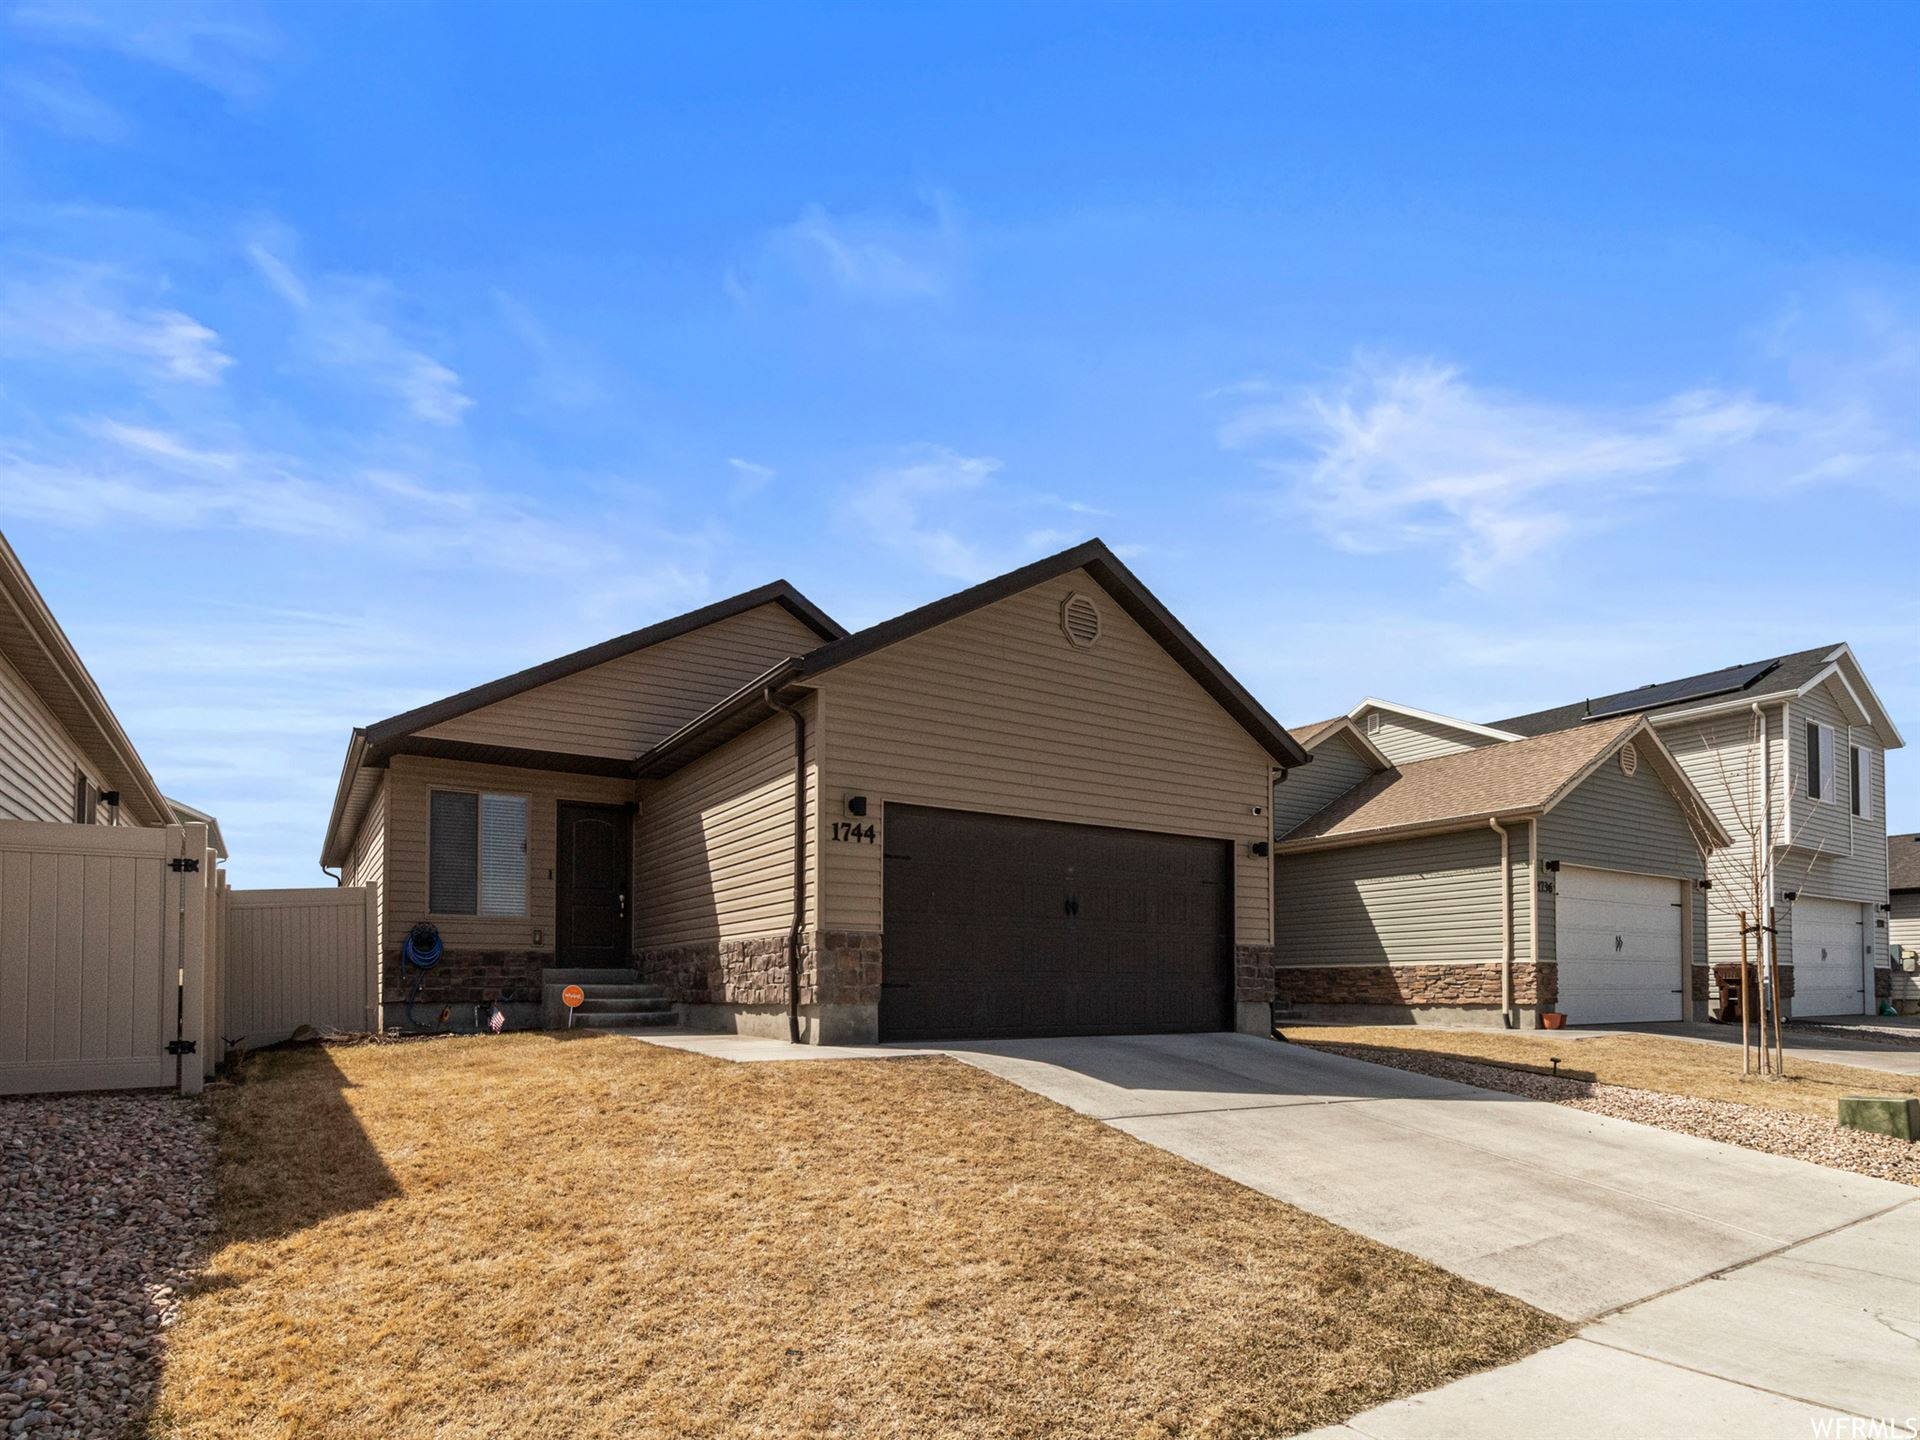 Photo of 1744 TUMMWATER E LN, Eagle Mountain, UT 84005 (MLS # 1732627)